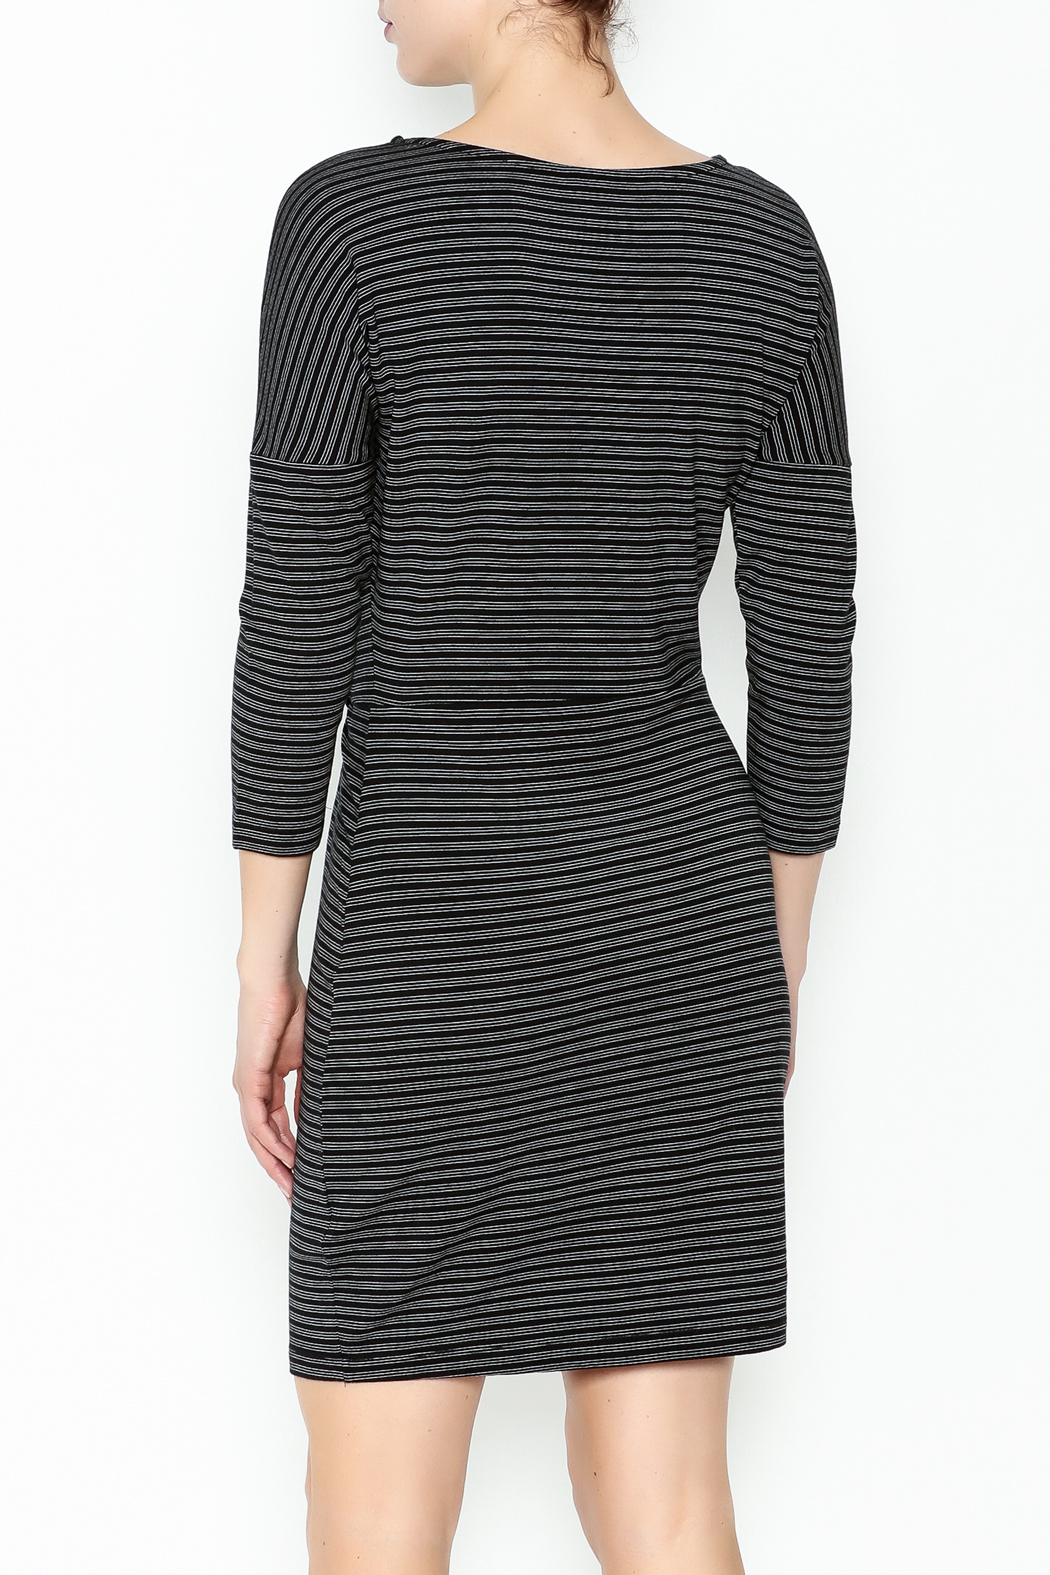 Cupcakes and Cashmere Waist Flattering Stripe Dress - Back Cropped Image